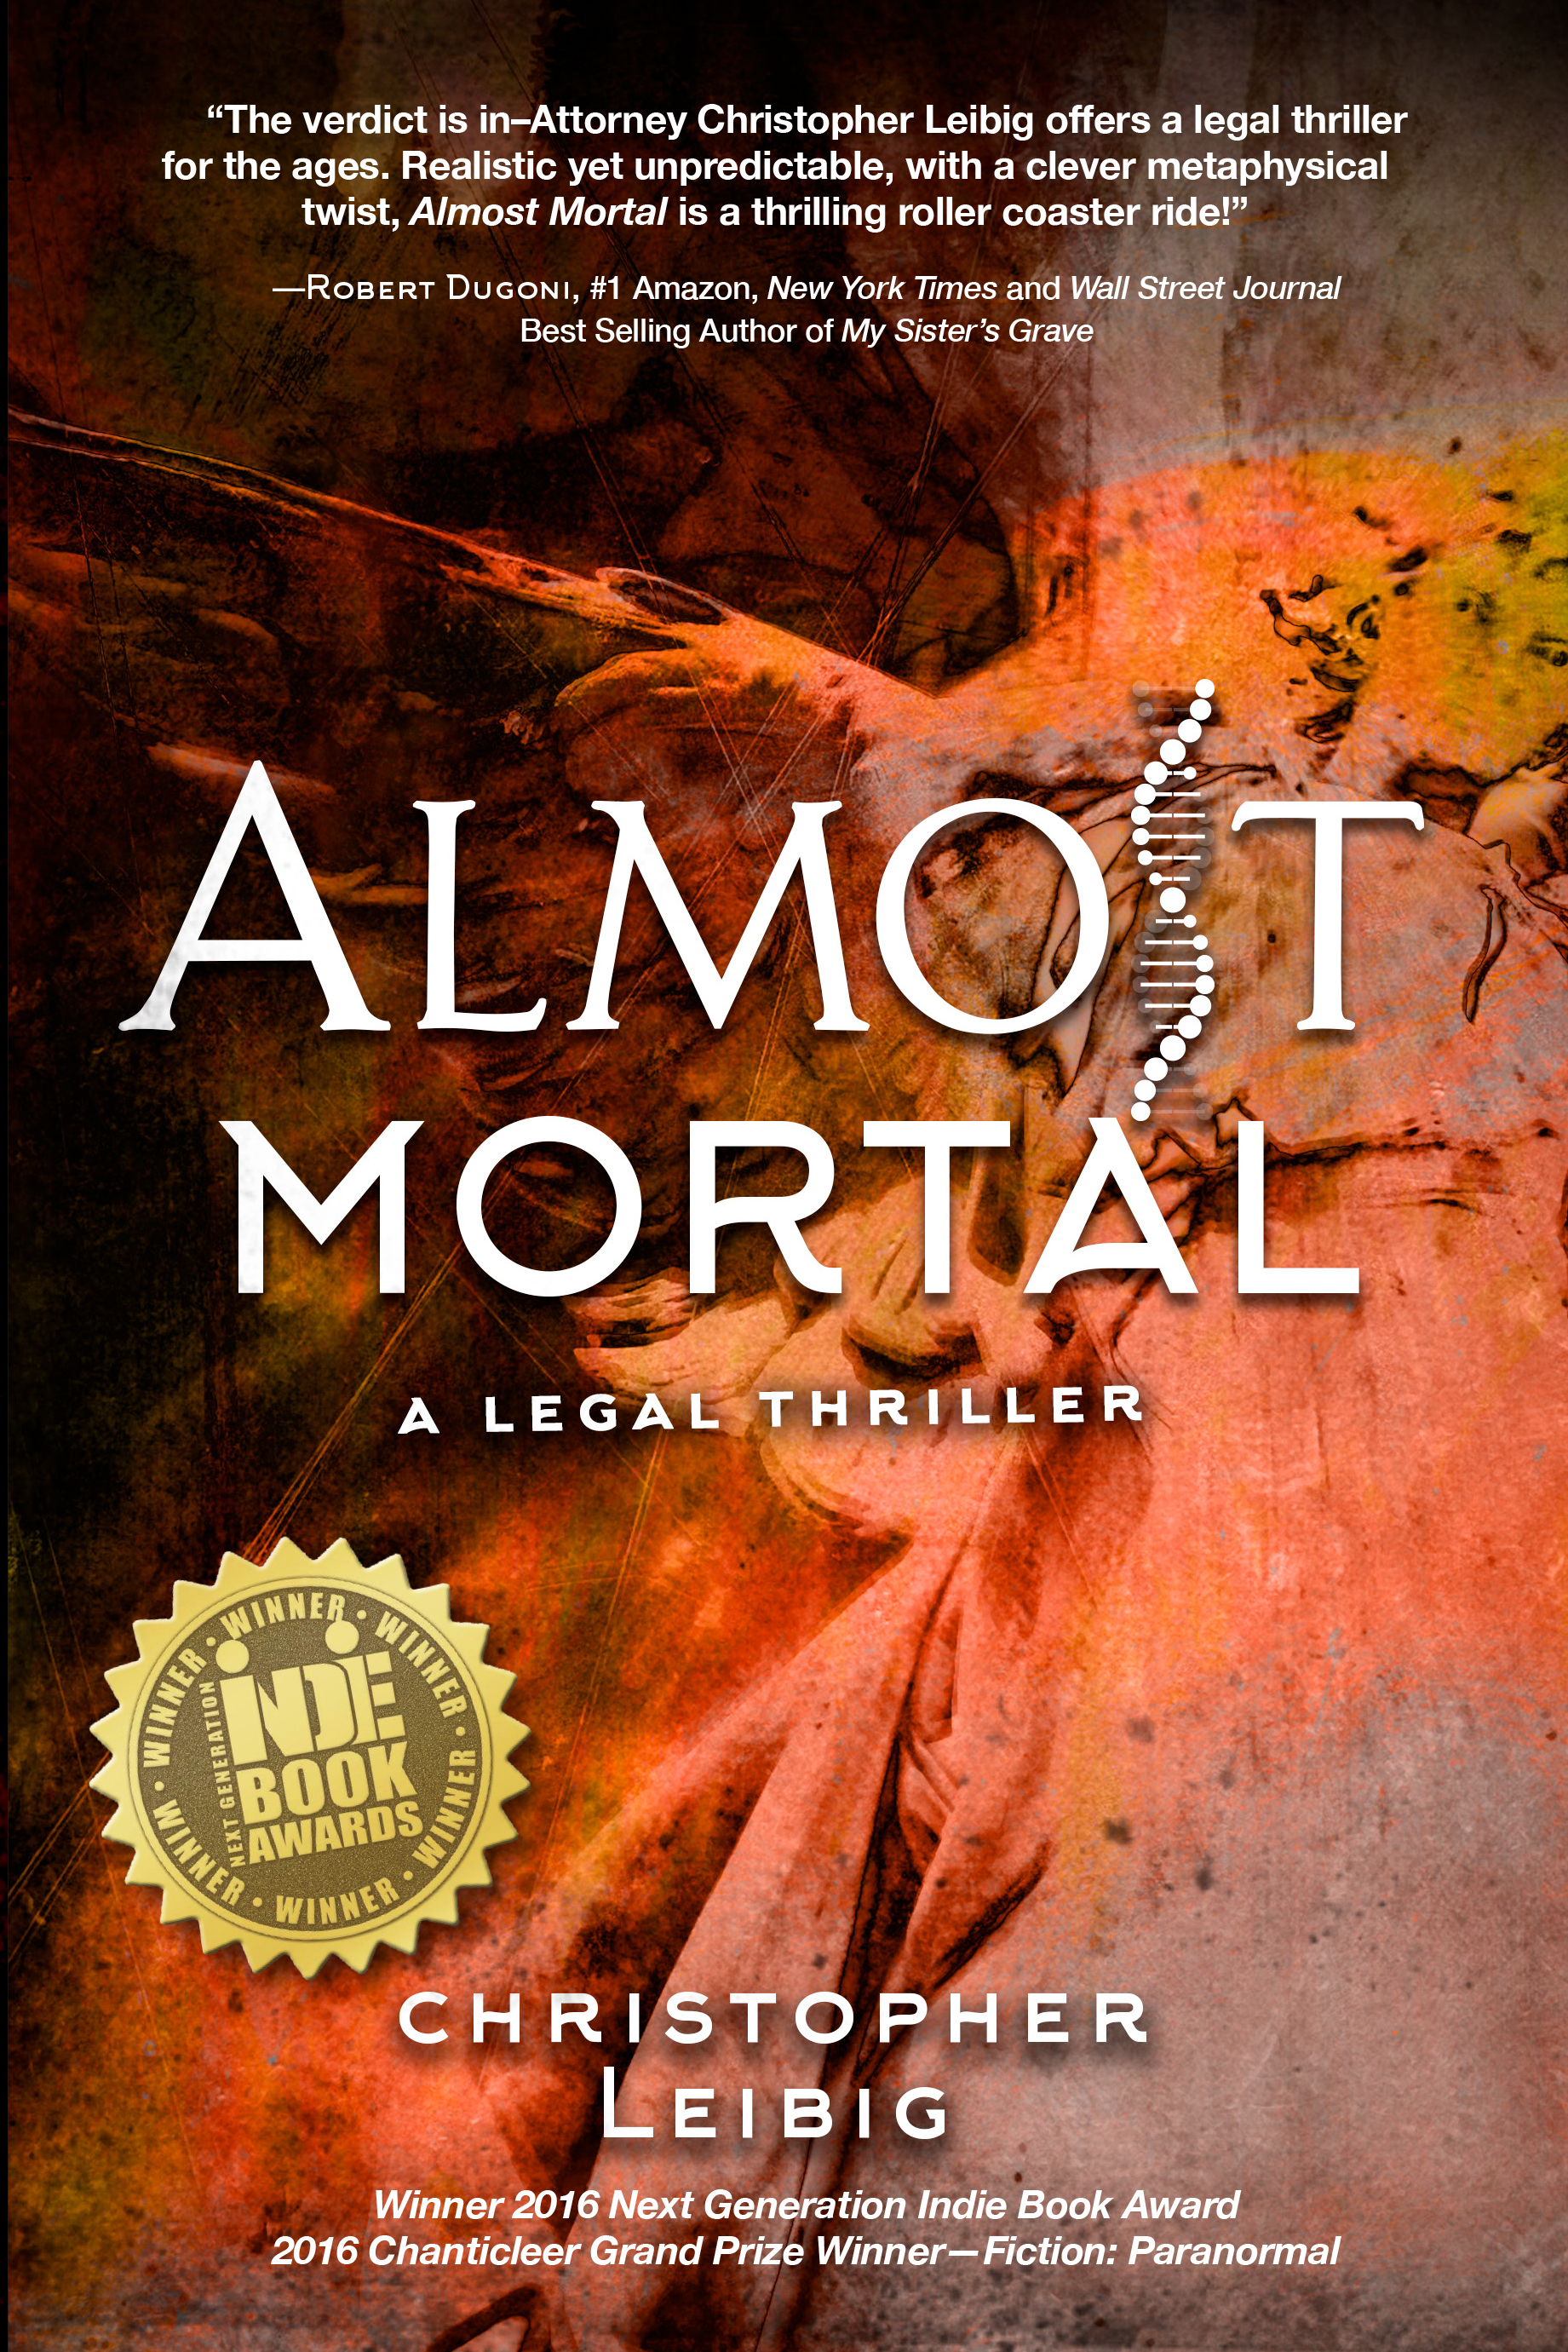 Almost Mortal in Amazon's Top 100 Legal Thrillers!